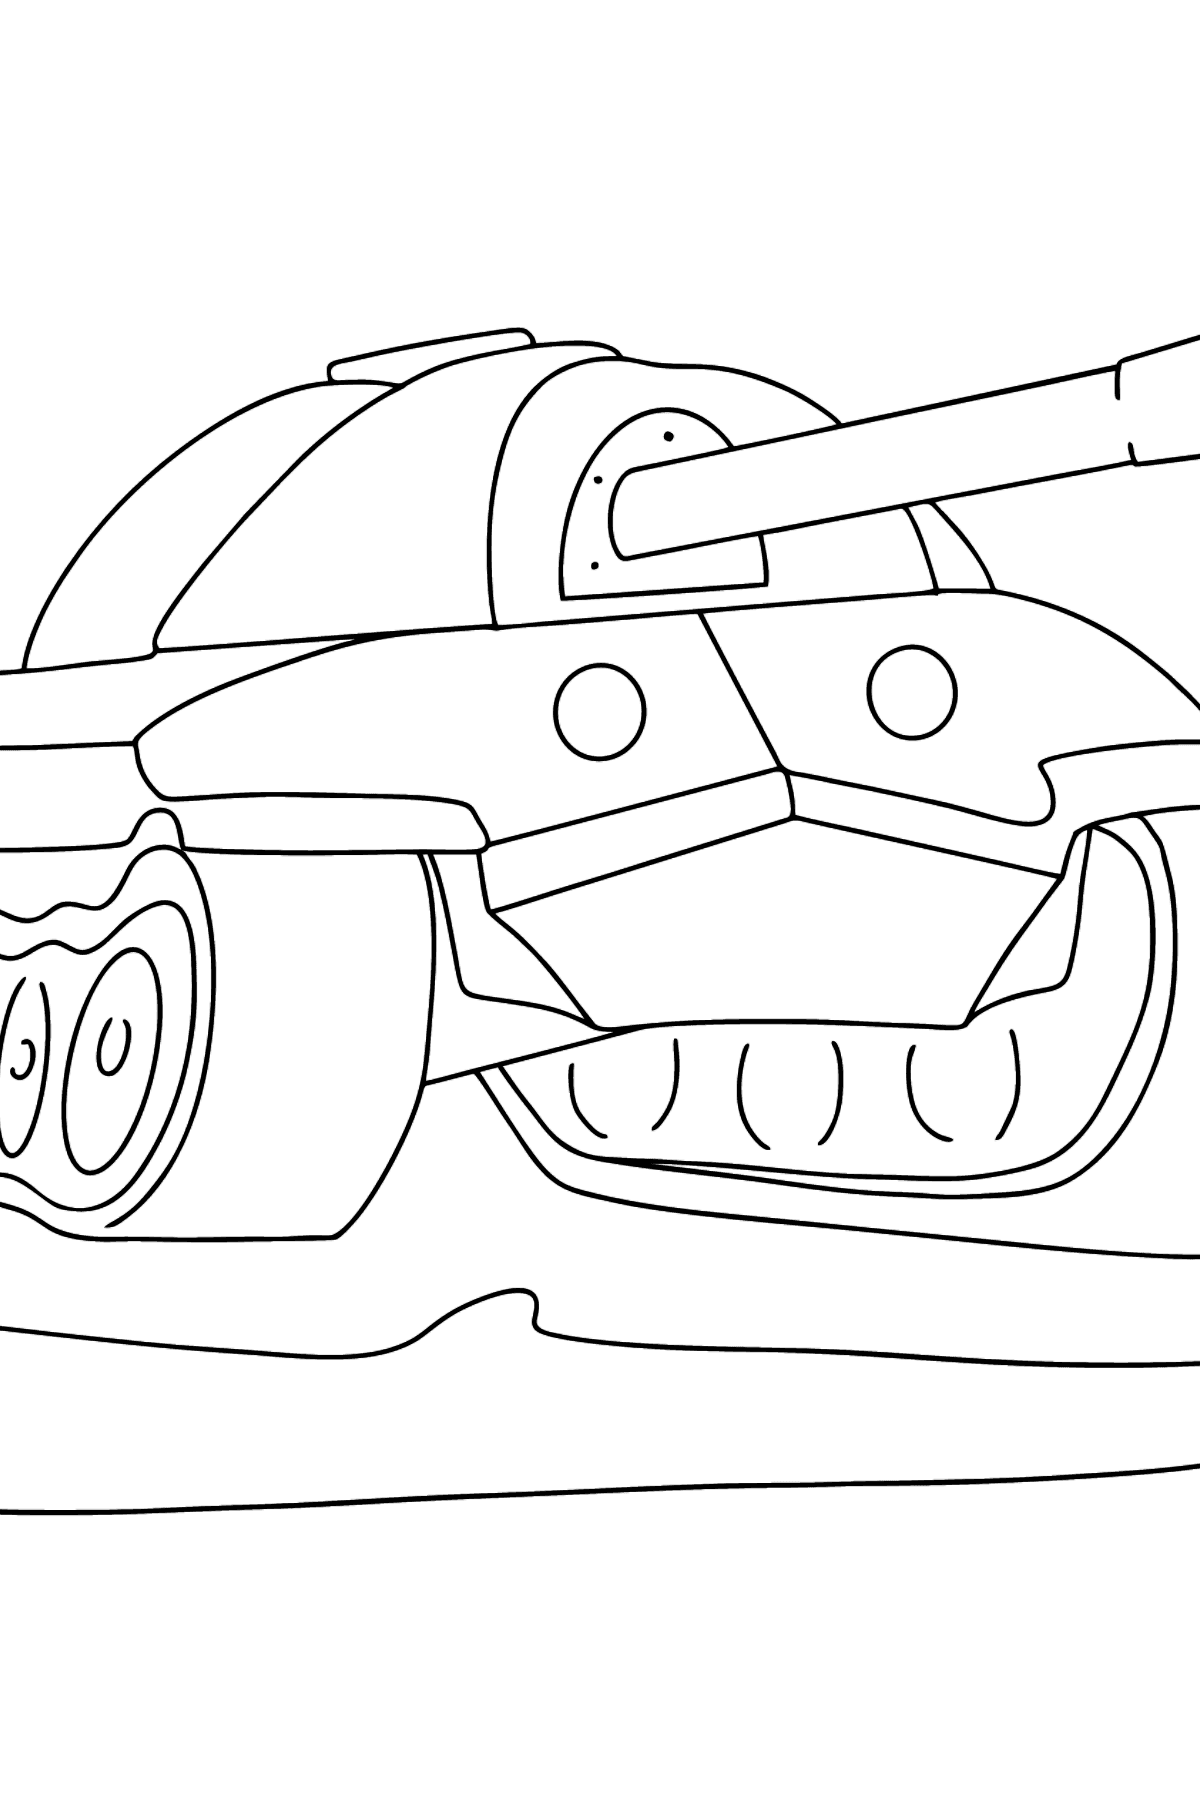 Tank IS 7 coloring page - Coloring Pages for Kids